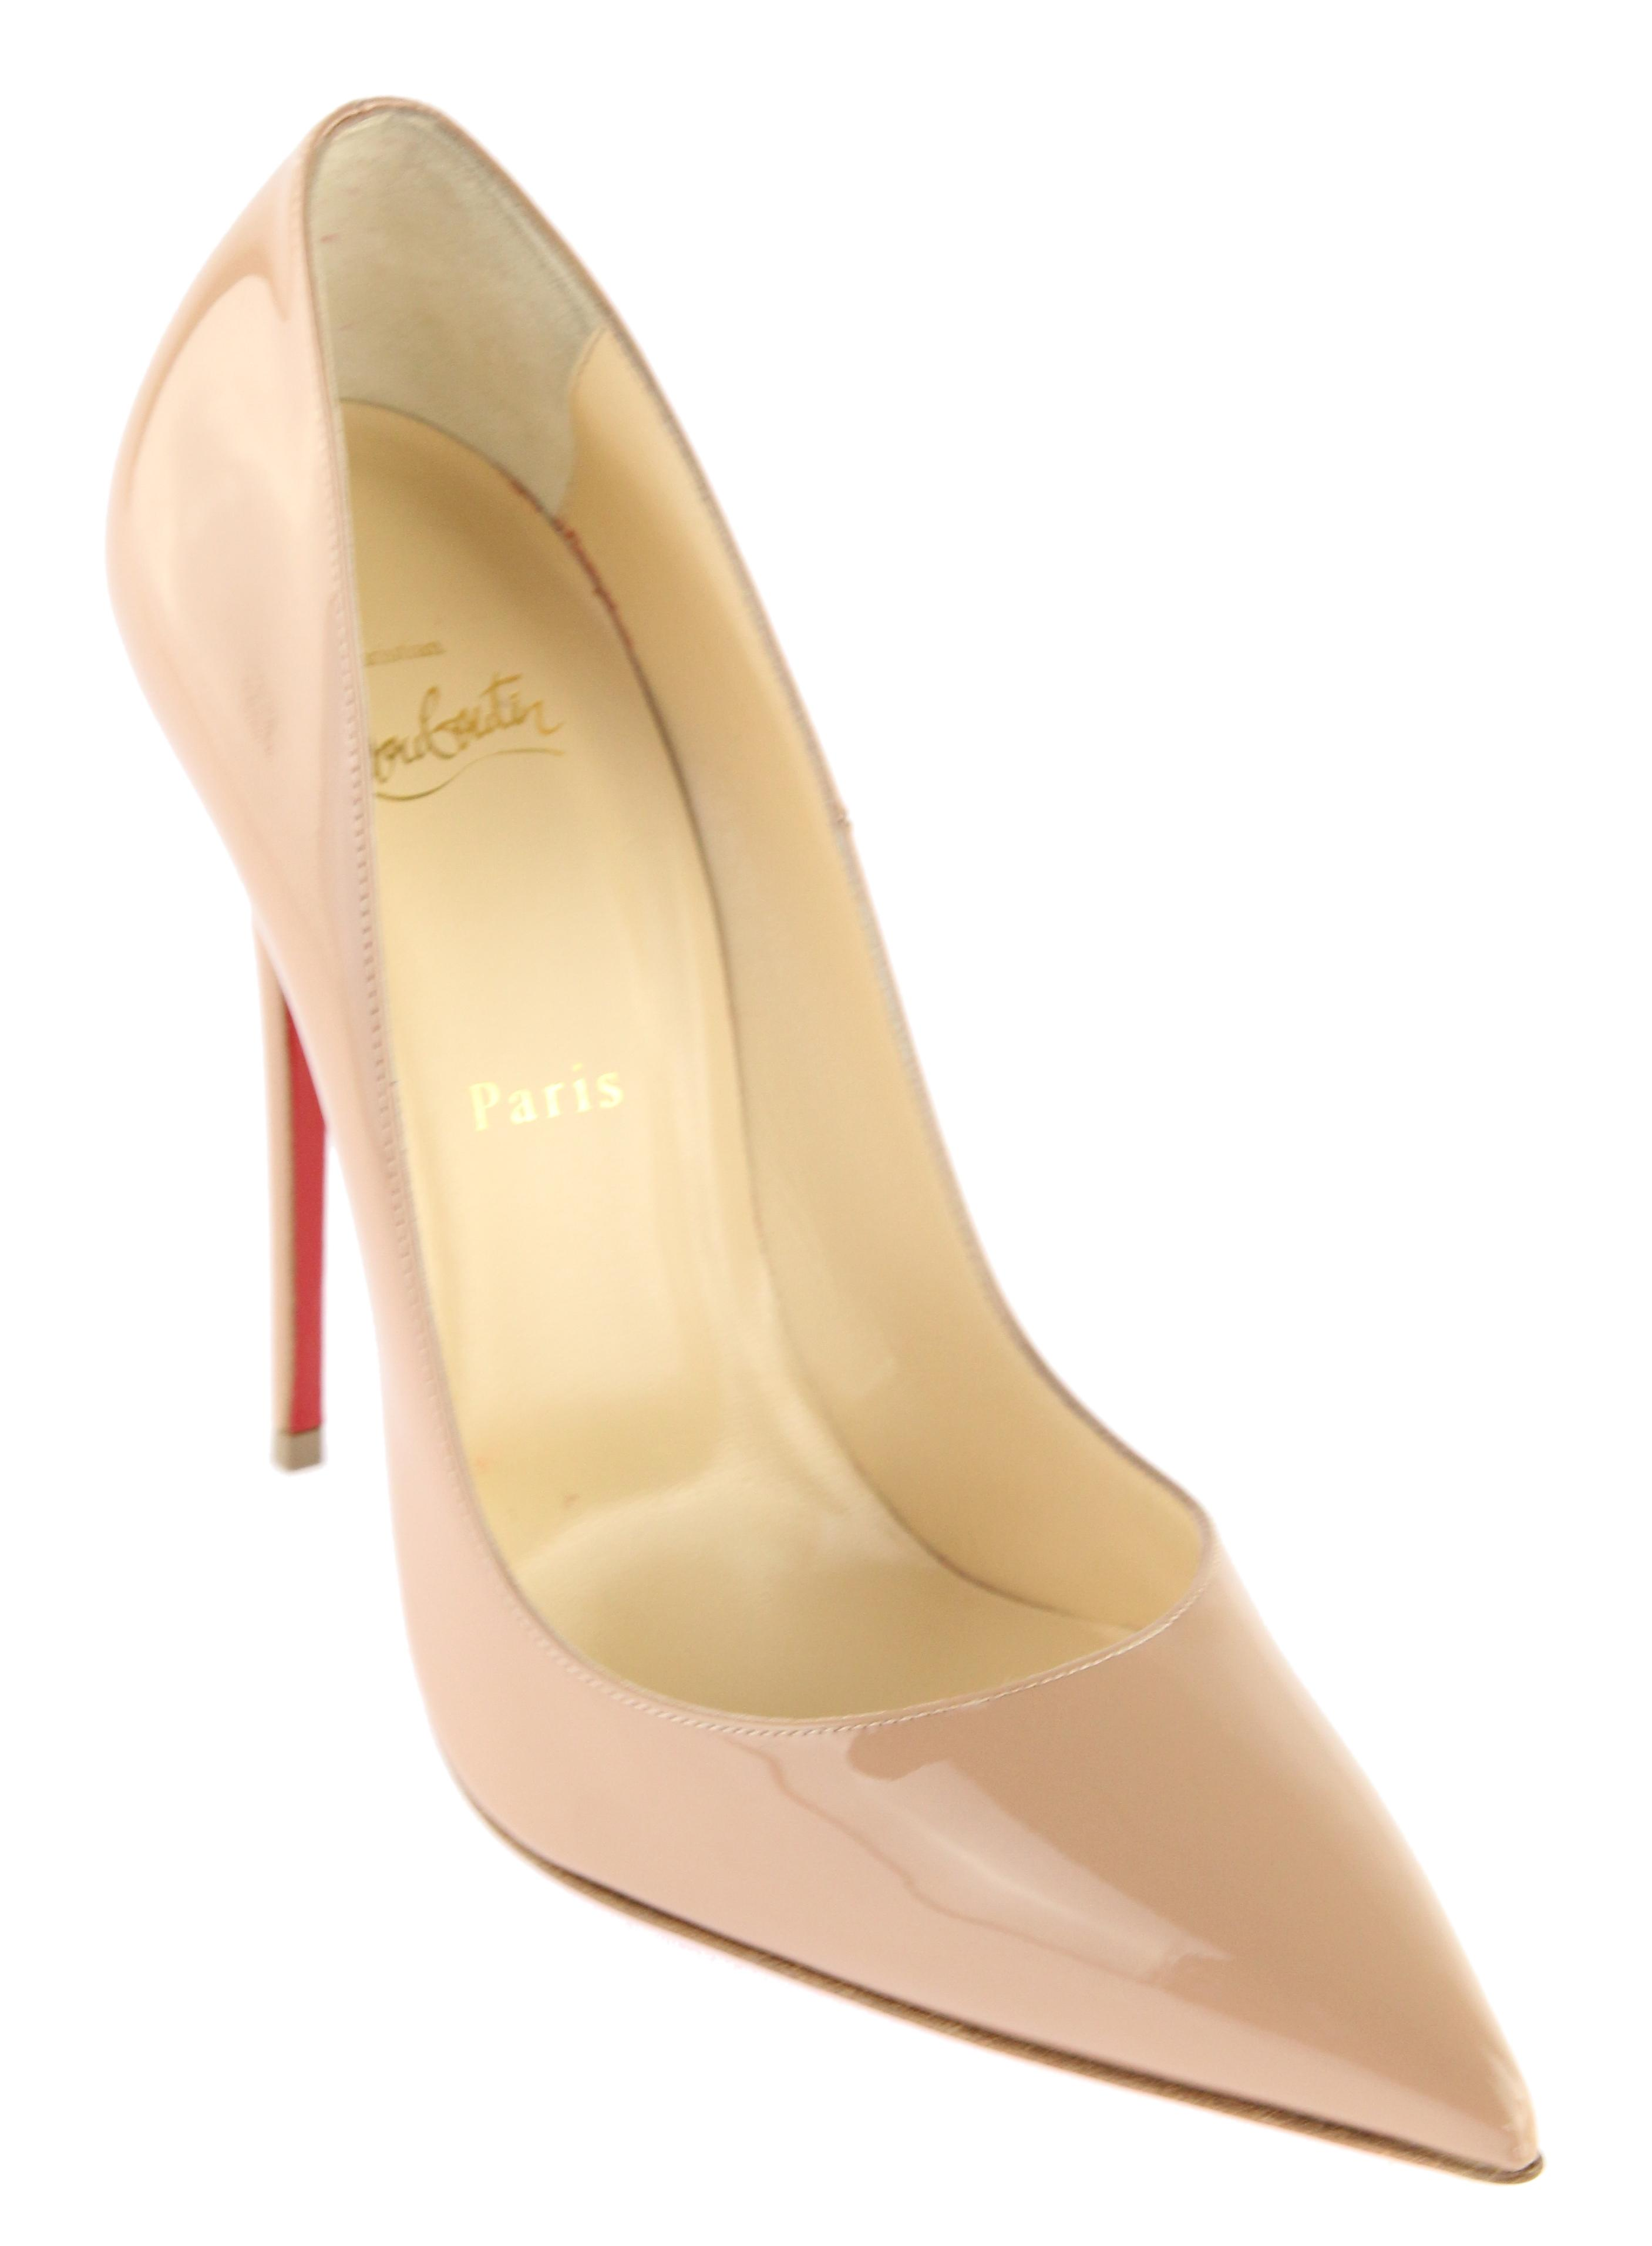 Christian Louboutin Nude Kate So Kate Nude 120 Patent Pumps Size EU 41 (Approx. US 11) Regular (M, B) 961ccd